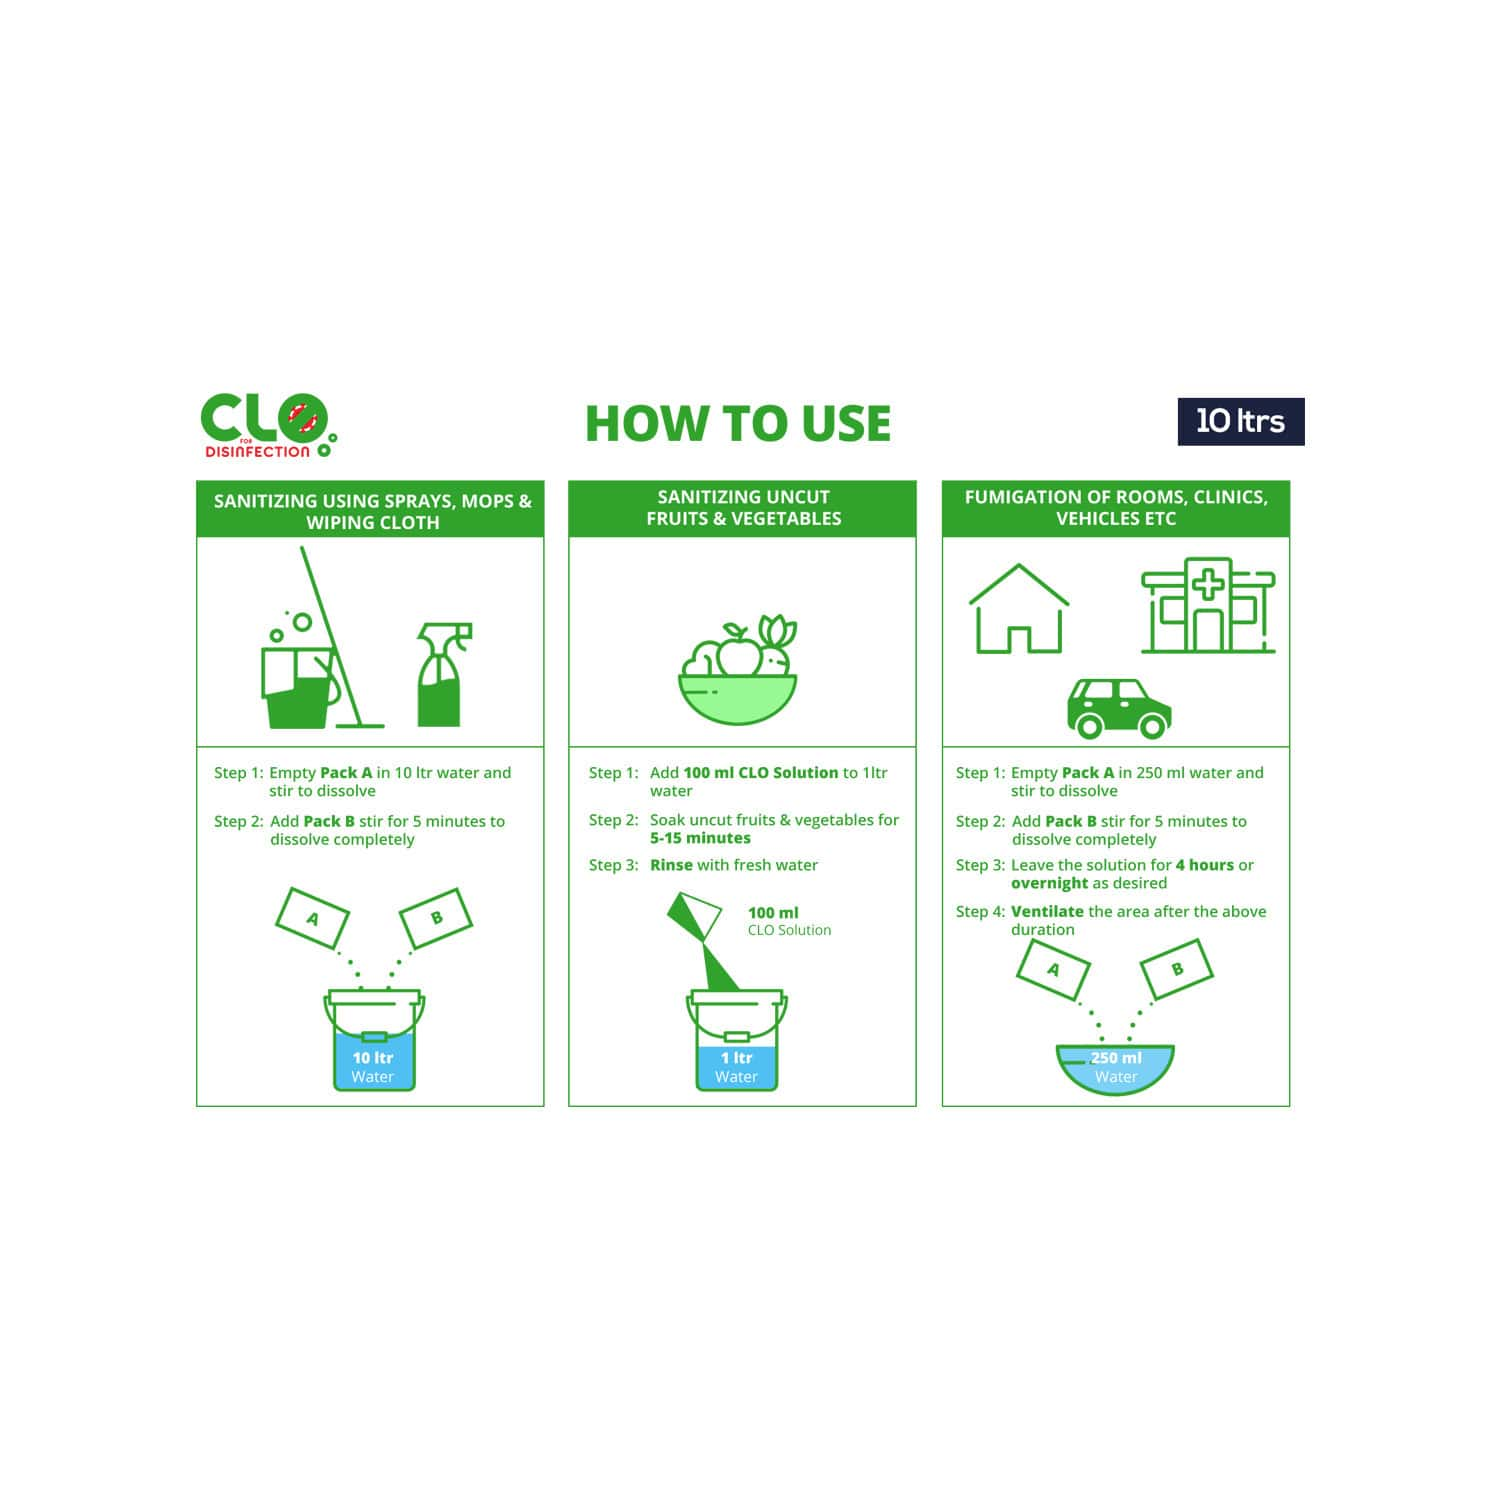 Clo Disinfectant And Sanitizer - 10 Packets - 10 Gm